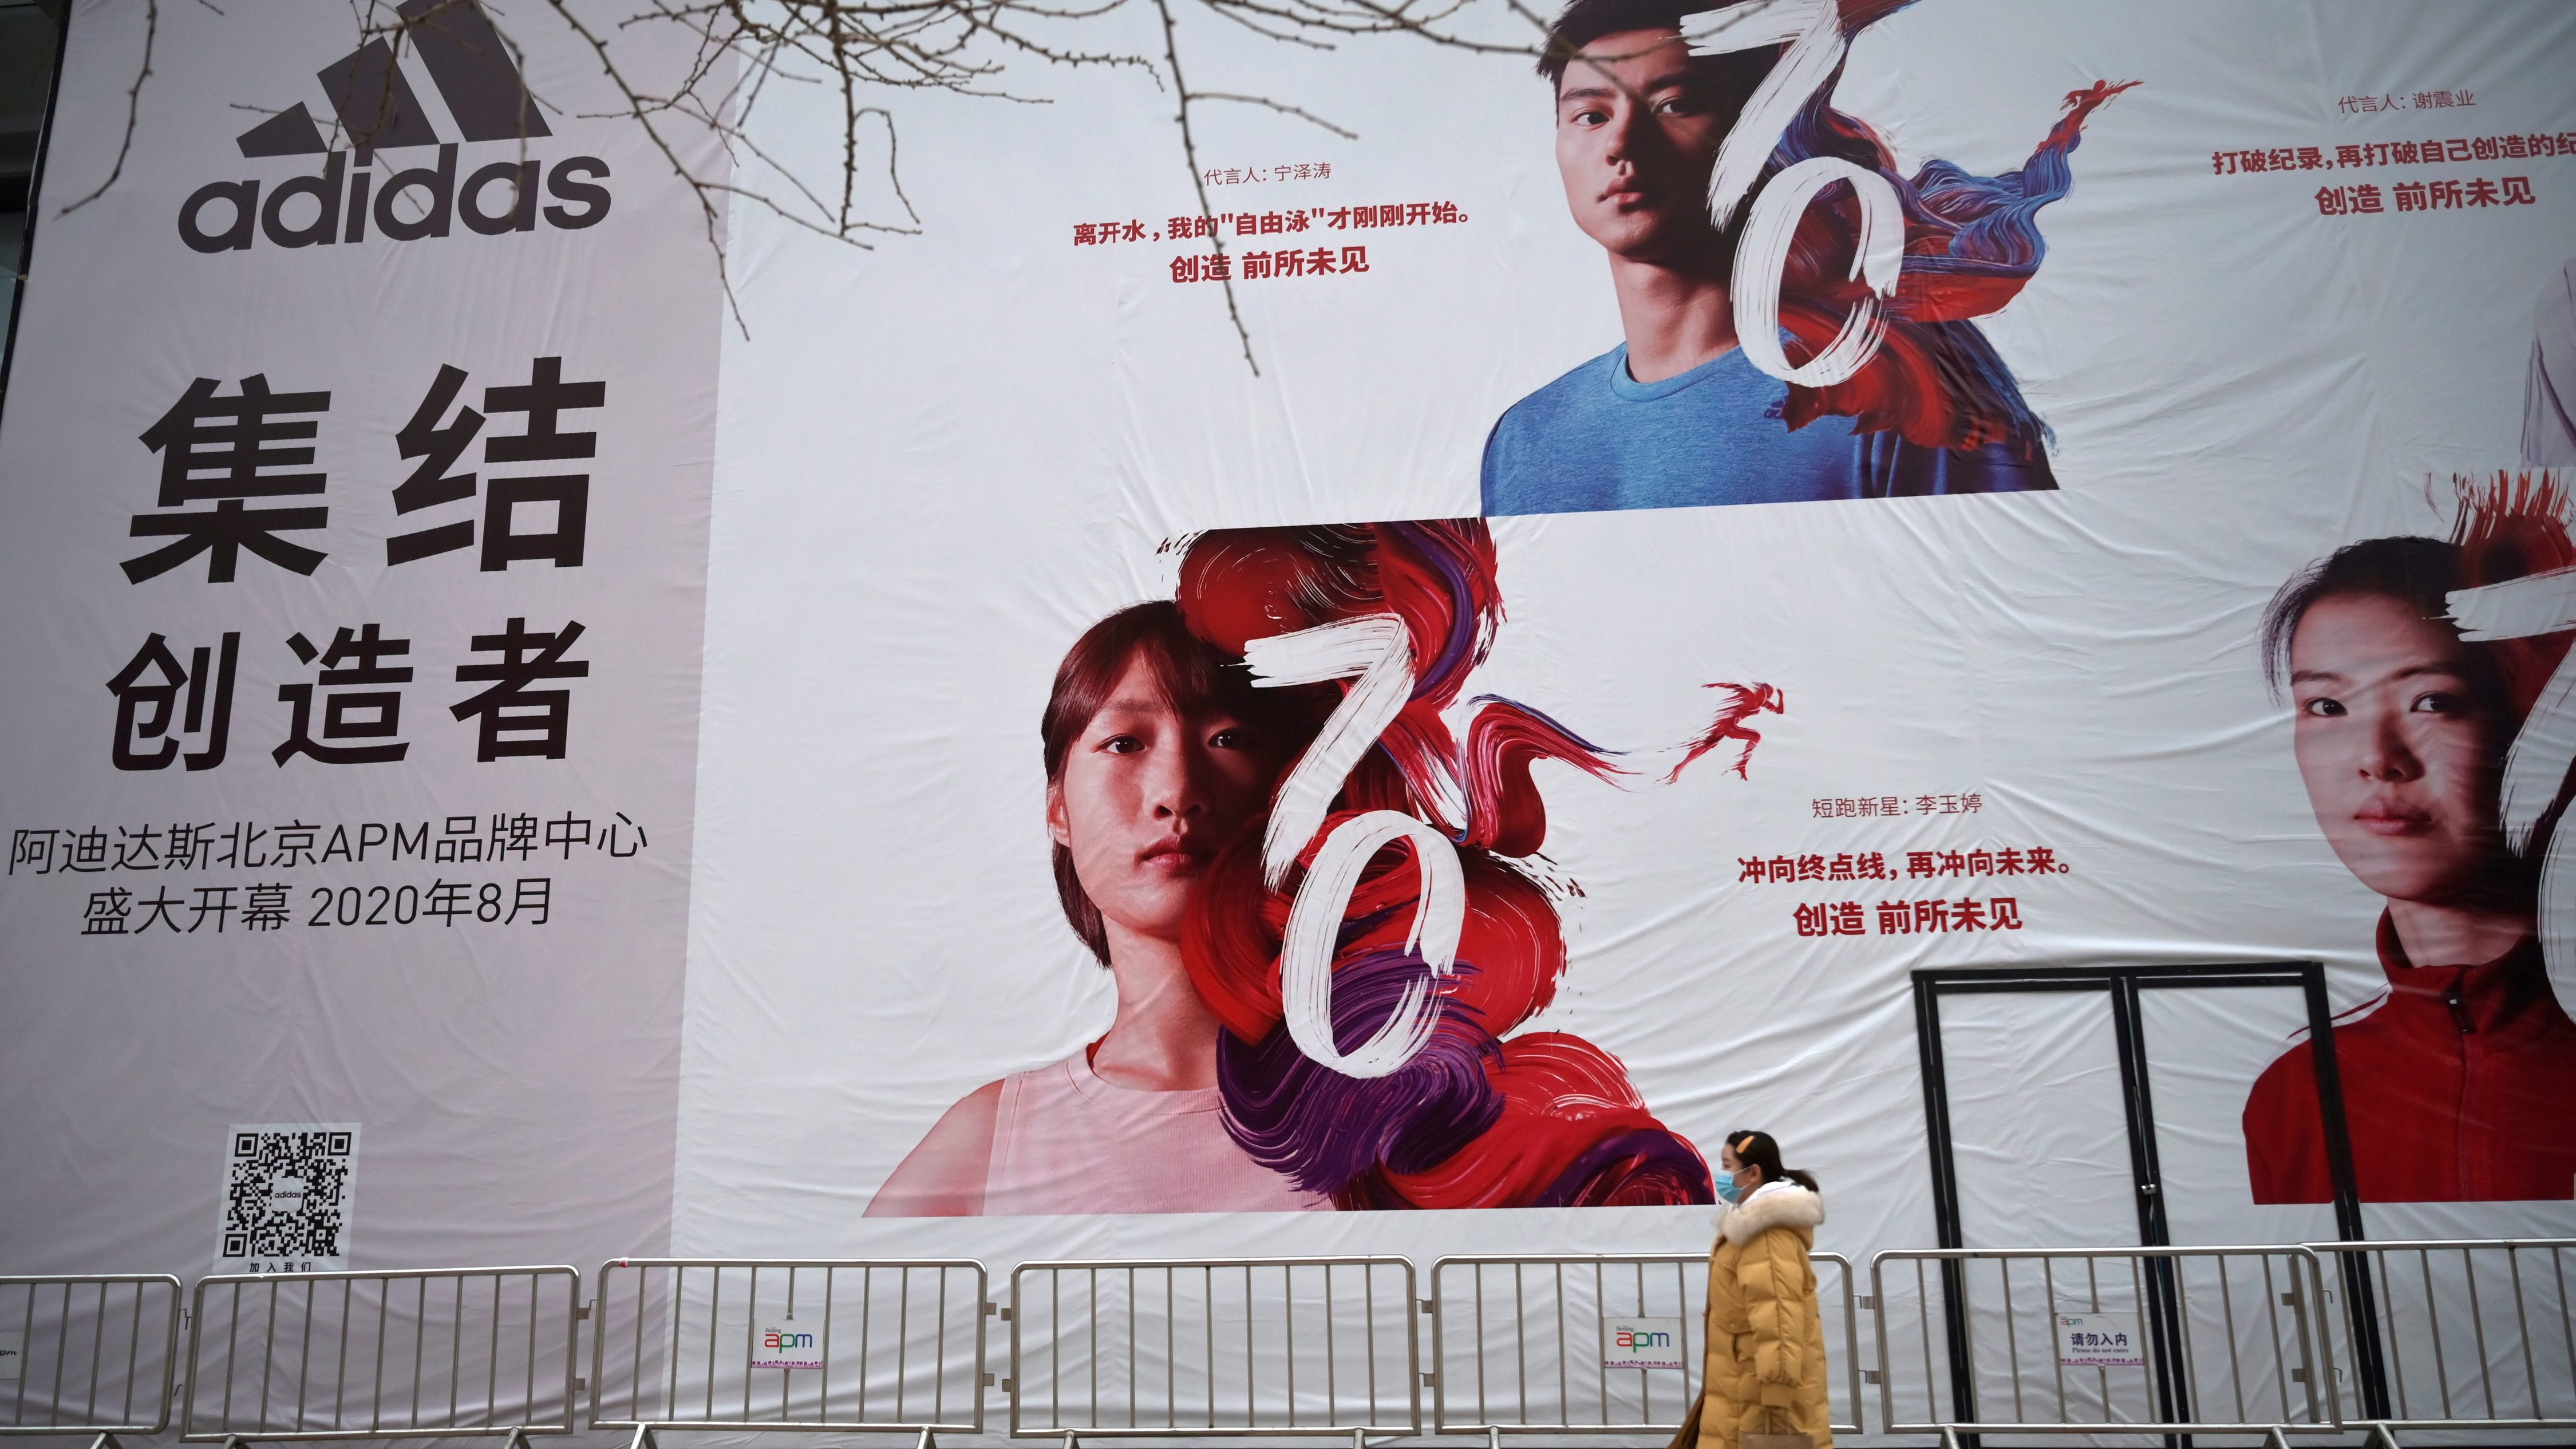 A woman wearing a face mask walks past a banner advertising new Adidas store in Beijing